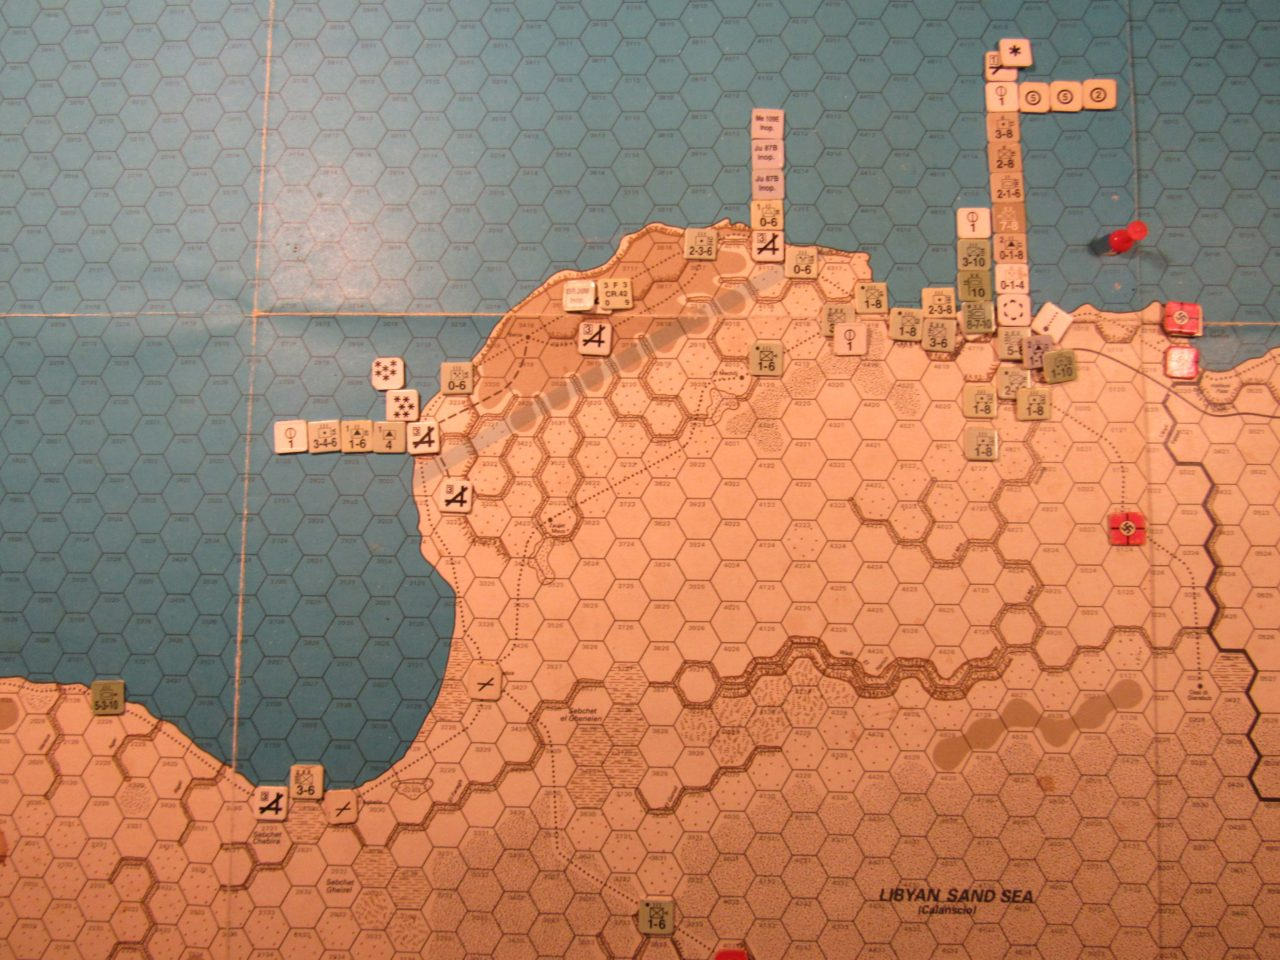 WW ME/ER-II/Crete Scenario Apr II 41 Axis EOT dispositions: eastern Libya detail